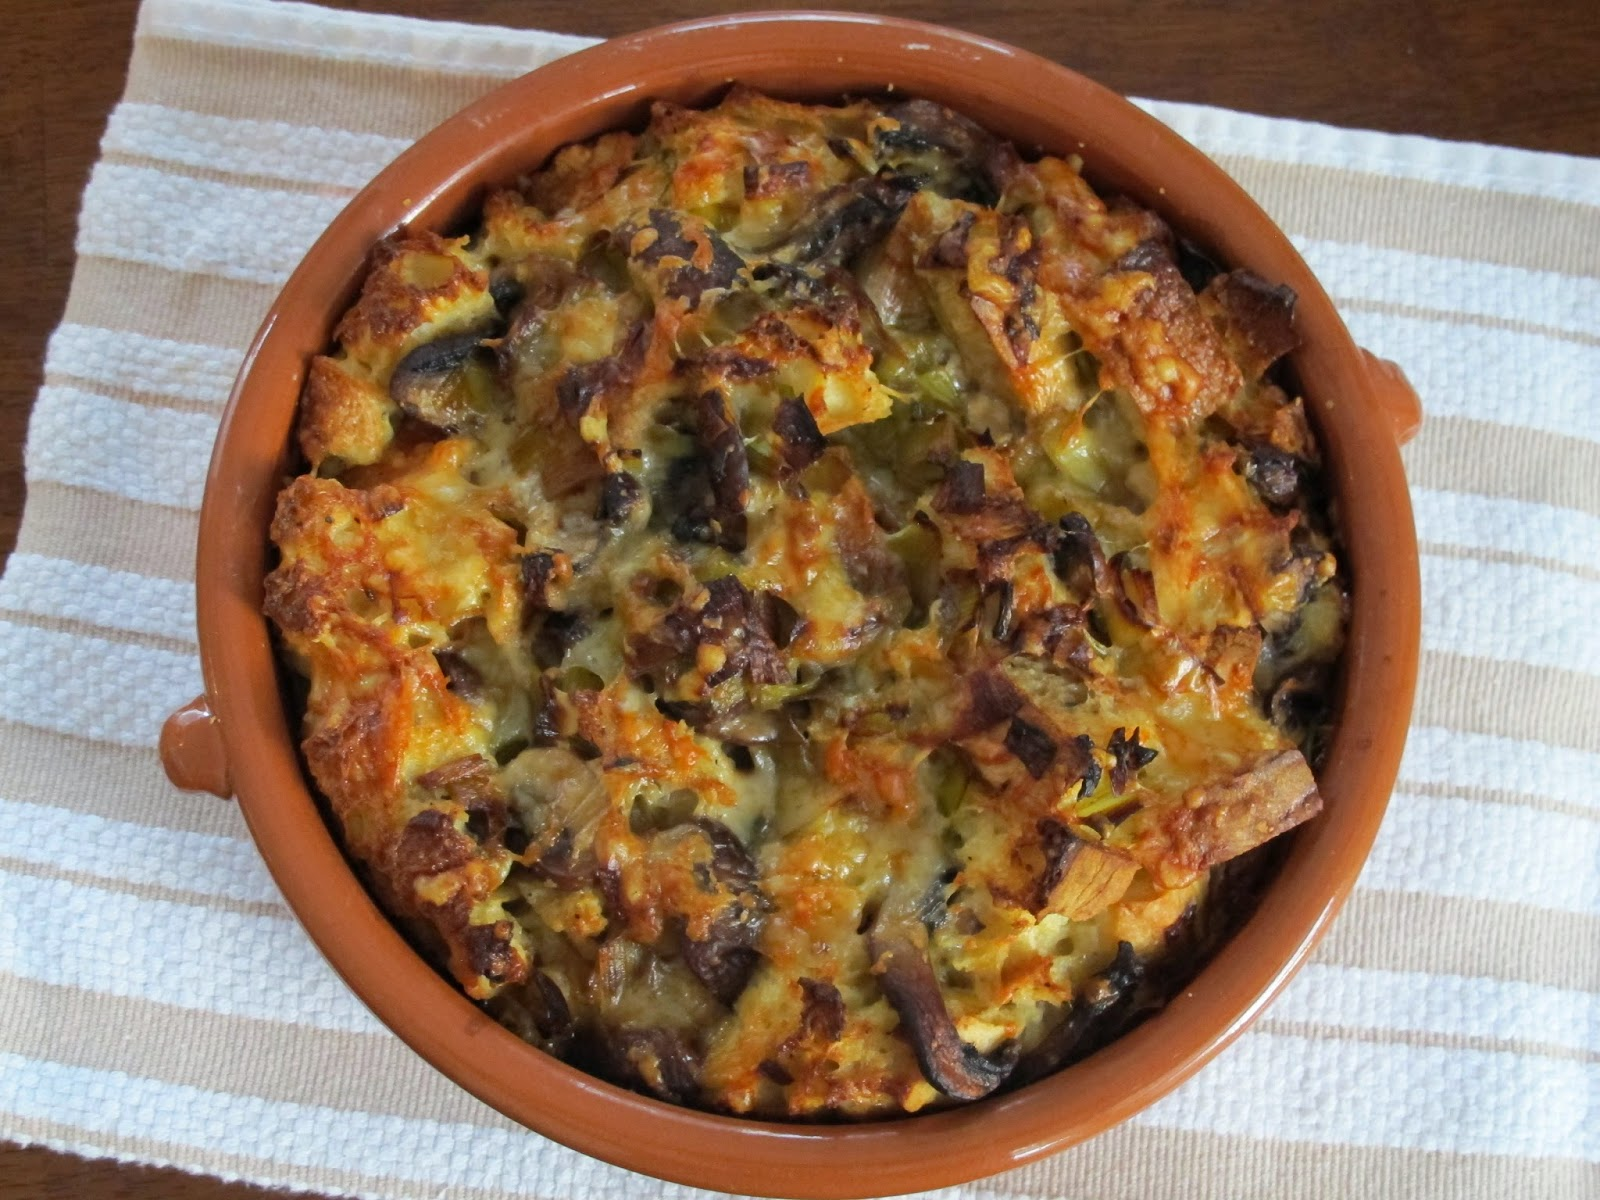 Leek and Mushroom Bread Pudding